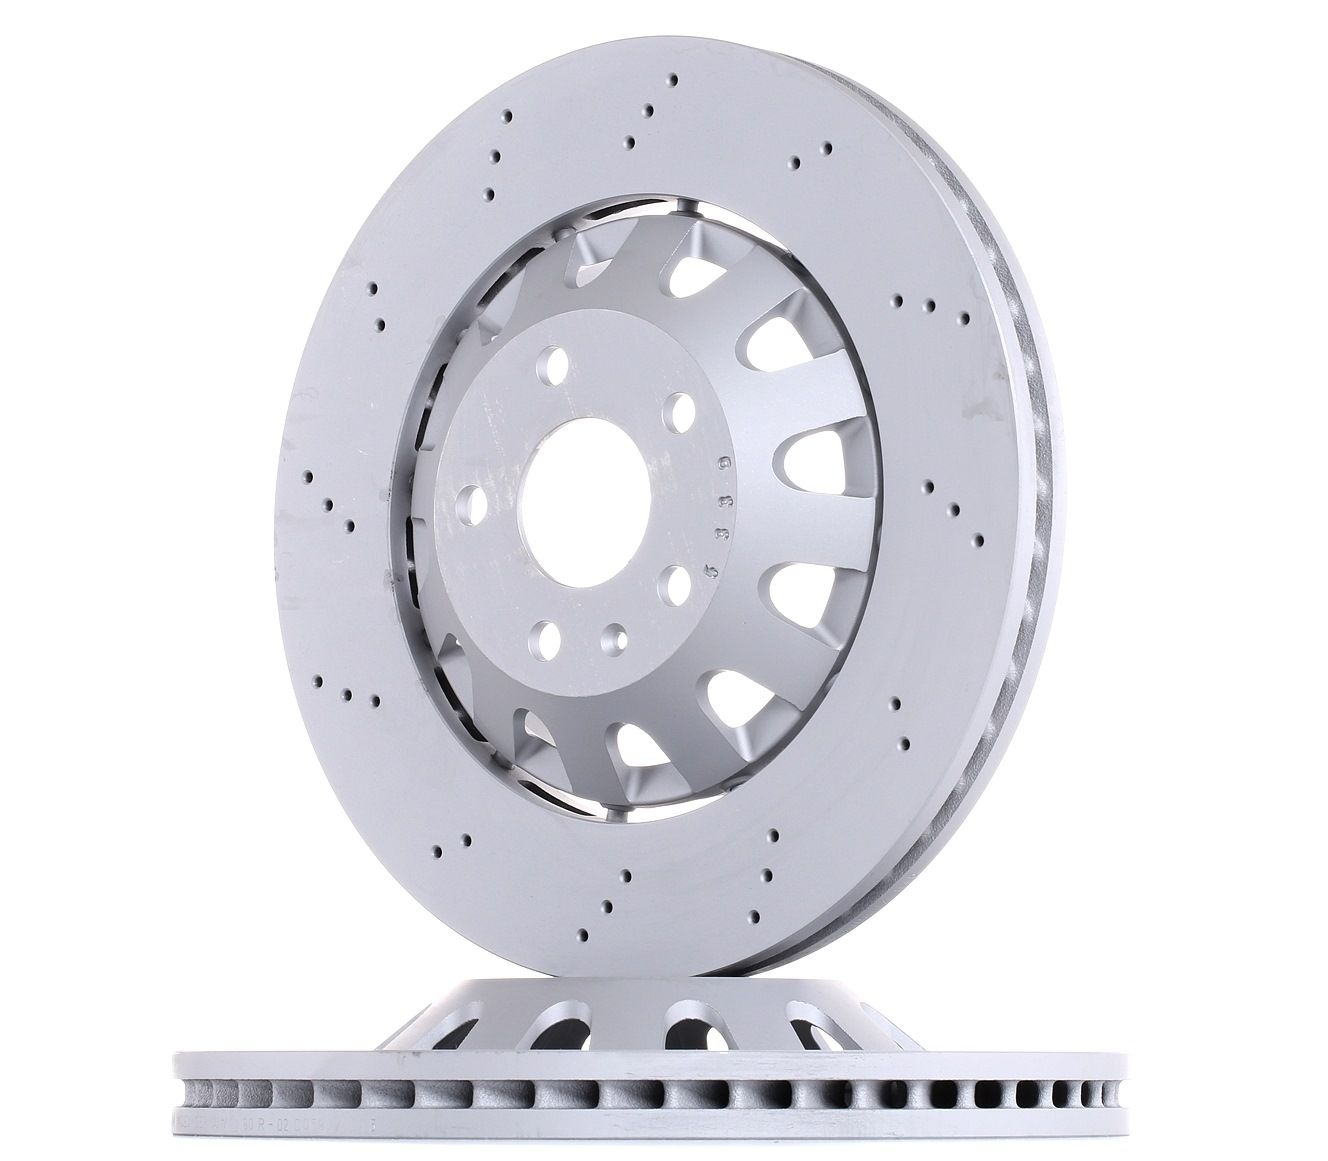 100.3368.70 ZIMMERMANN FORMULA Z COAT Z Vented, Perforated, Two-piece Brake Disc, Coated, Alloyed / High-carbon Ø: 370mm, Rim: 5-Hole, Brake Disc Thickness: 32mm Brake Disc 100.3368.70 cheap